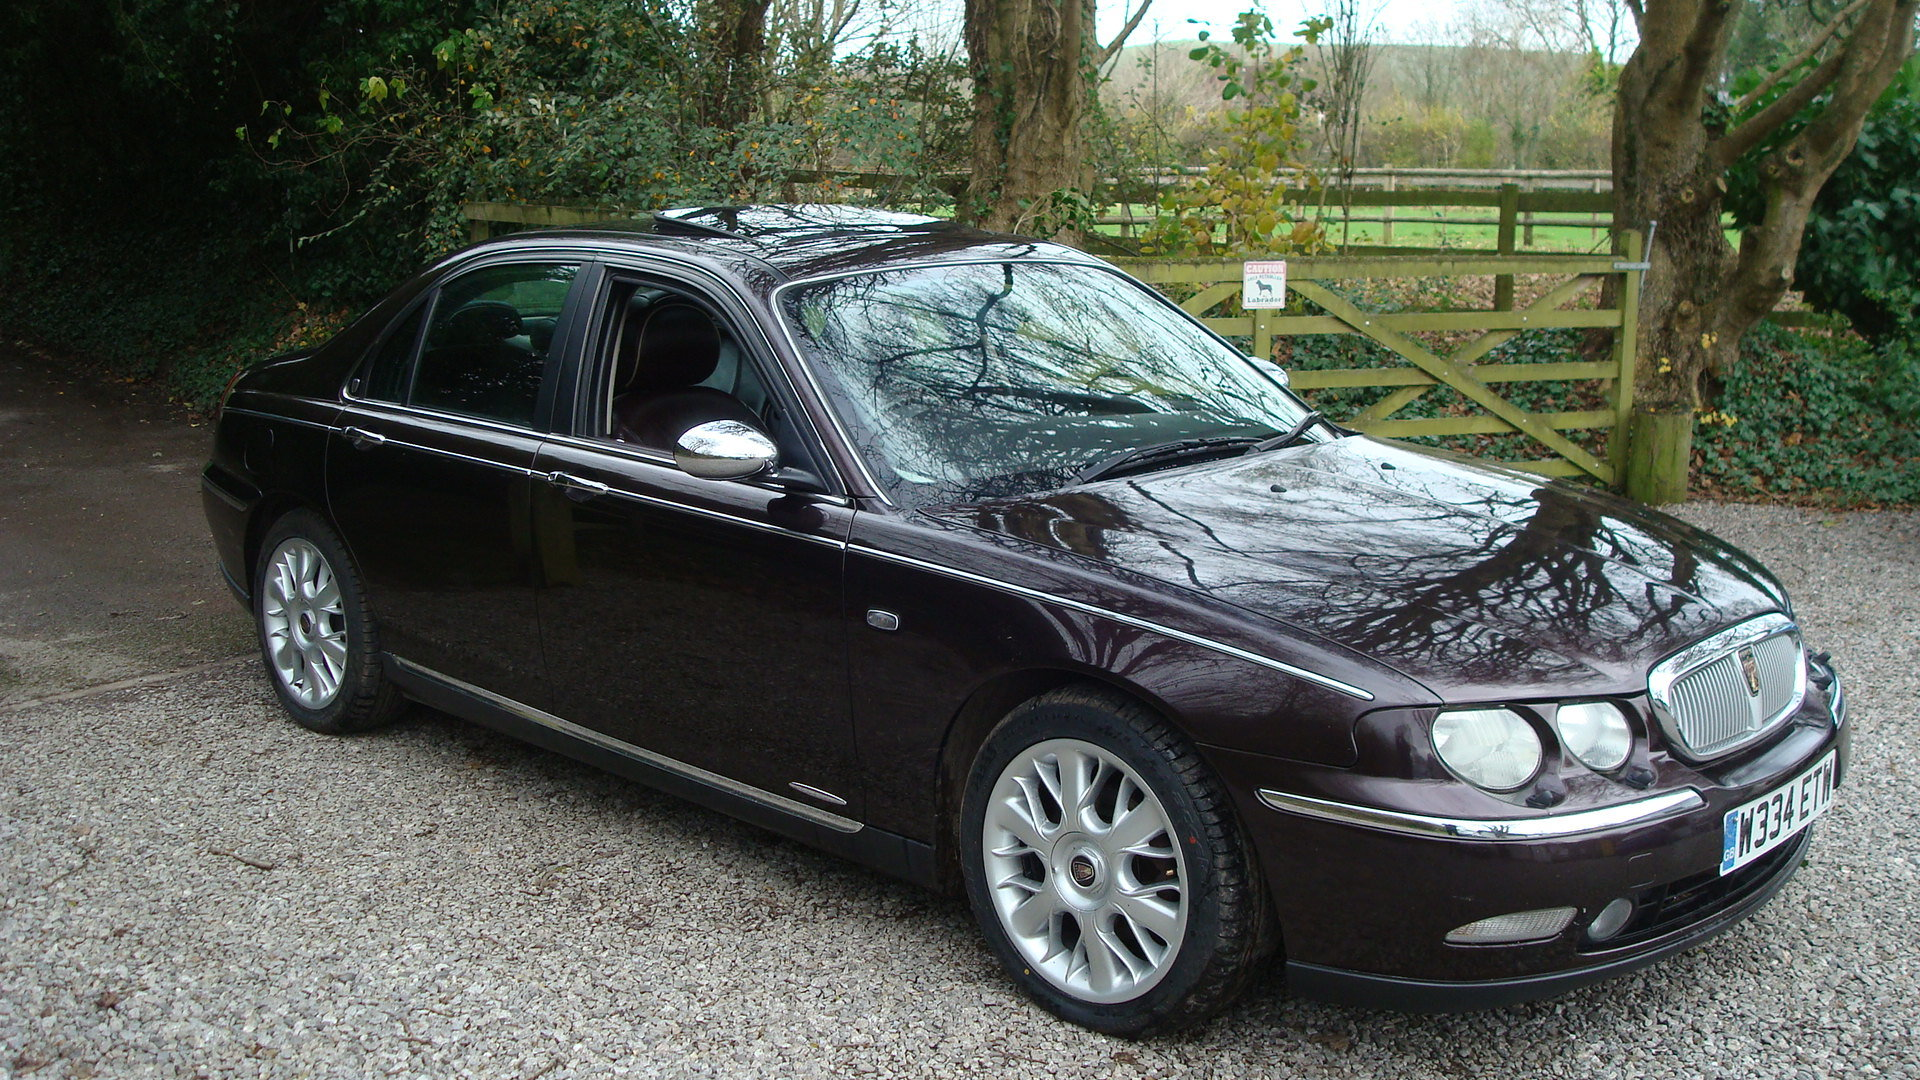 2000 Rover 75 2.5 V6 Connoisseur SE For Sale (picture 1 of 6)